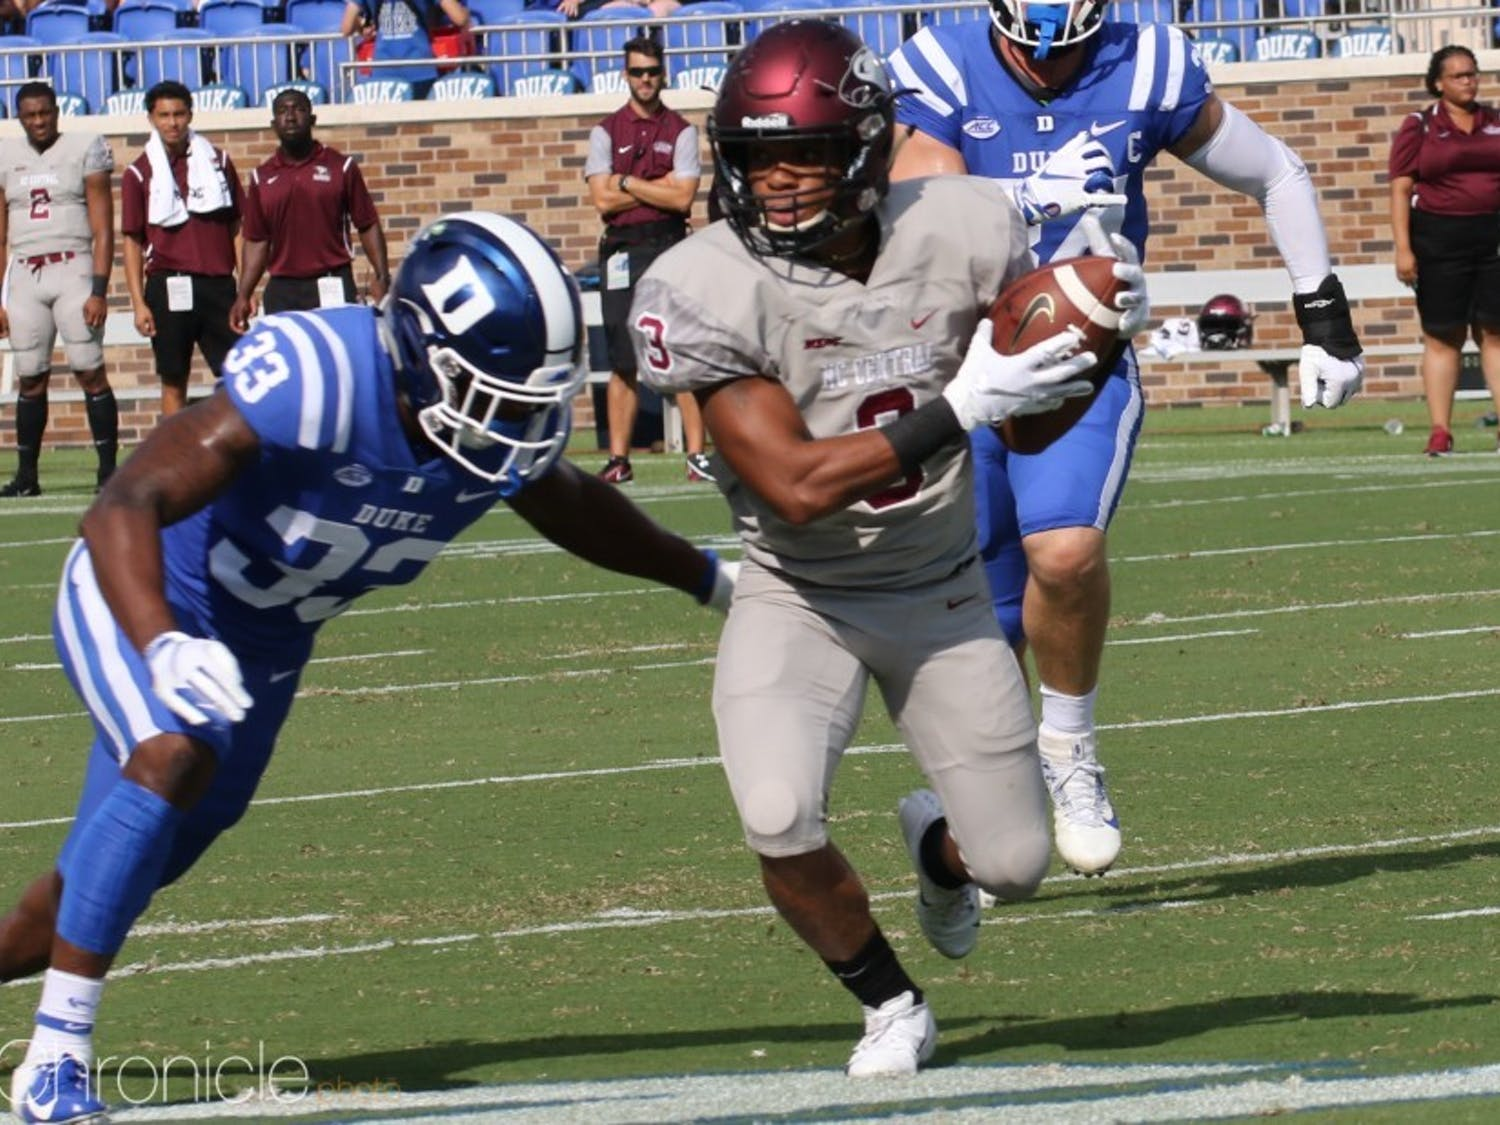 Duke will rely heavily on their defense this season and Leonard Johnson will be anchoring the secondary.